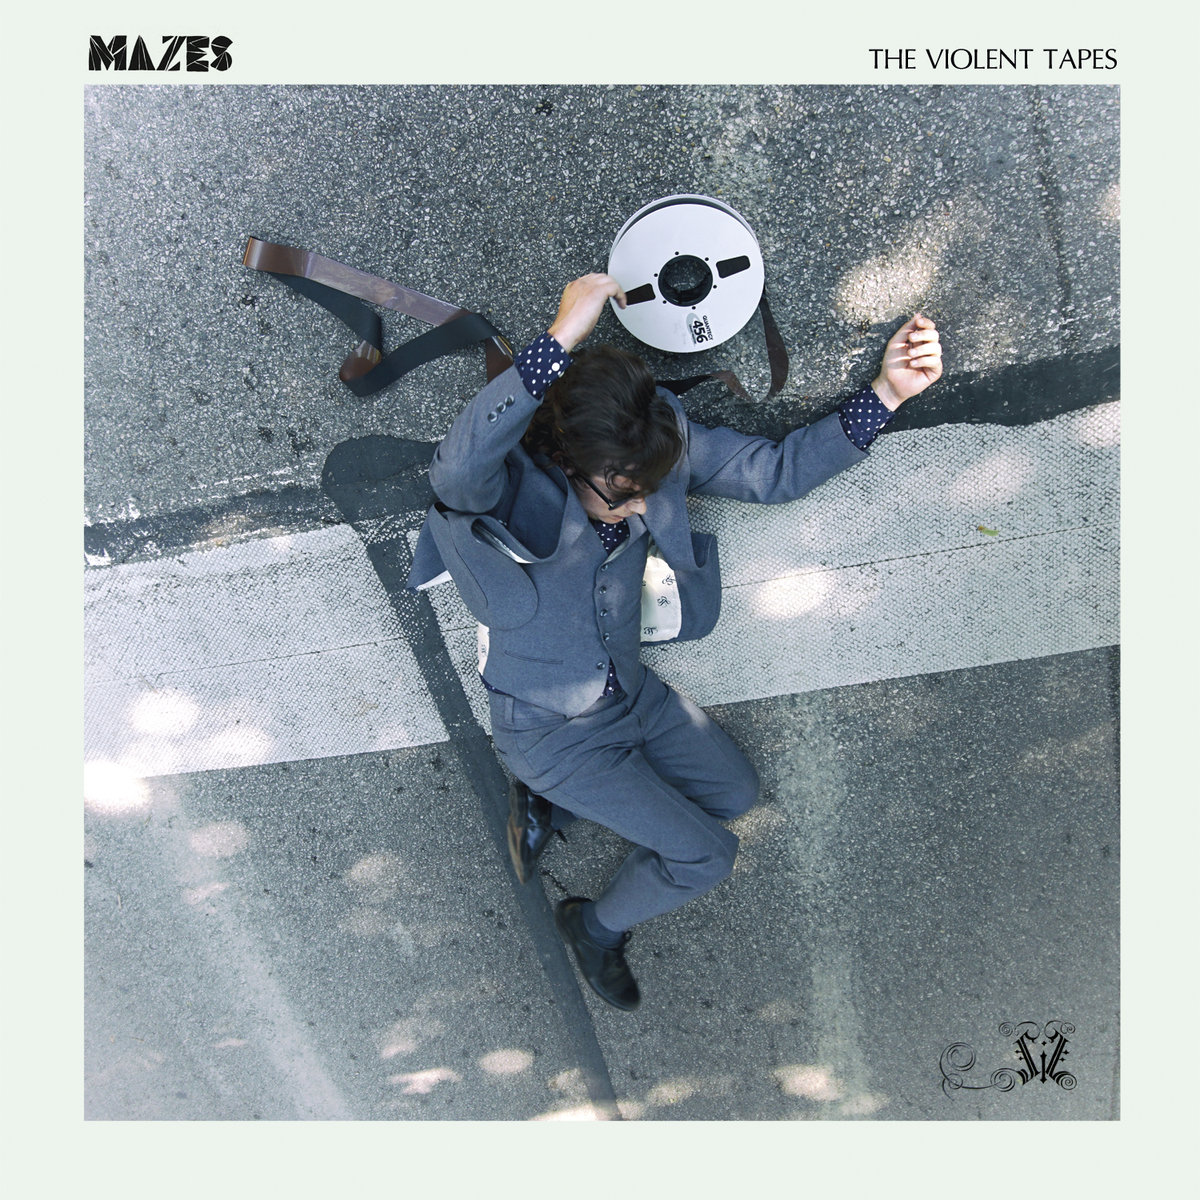 Mazes The Violent Tapes